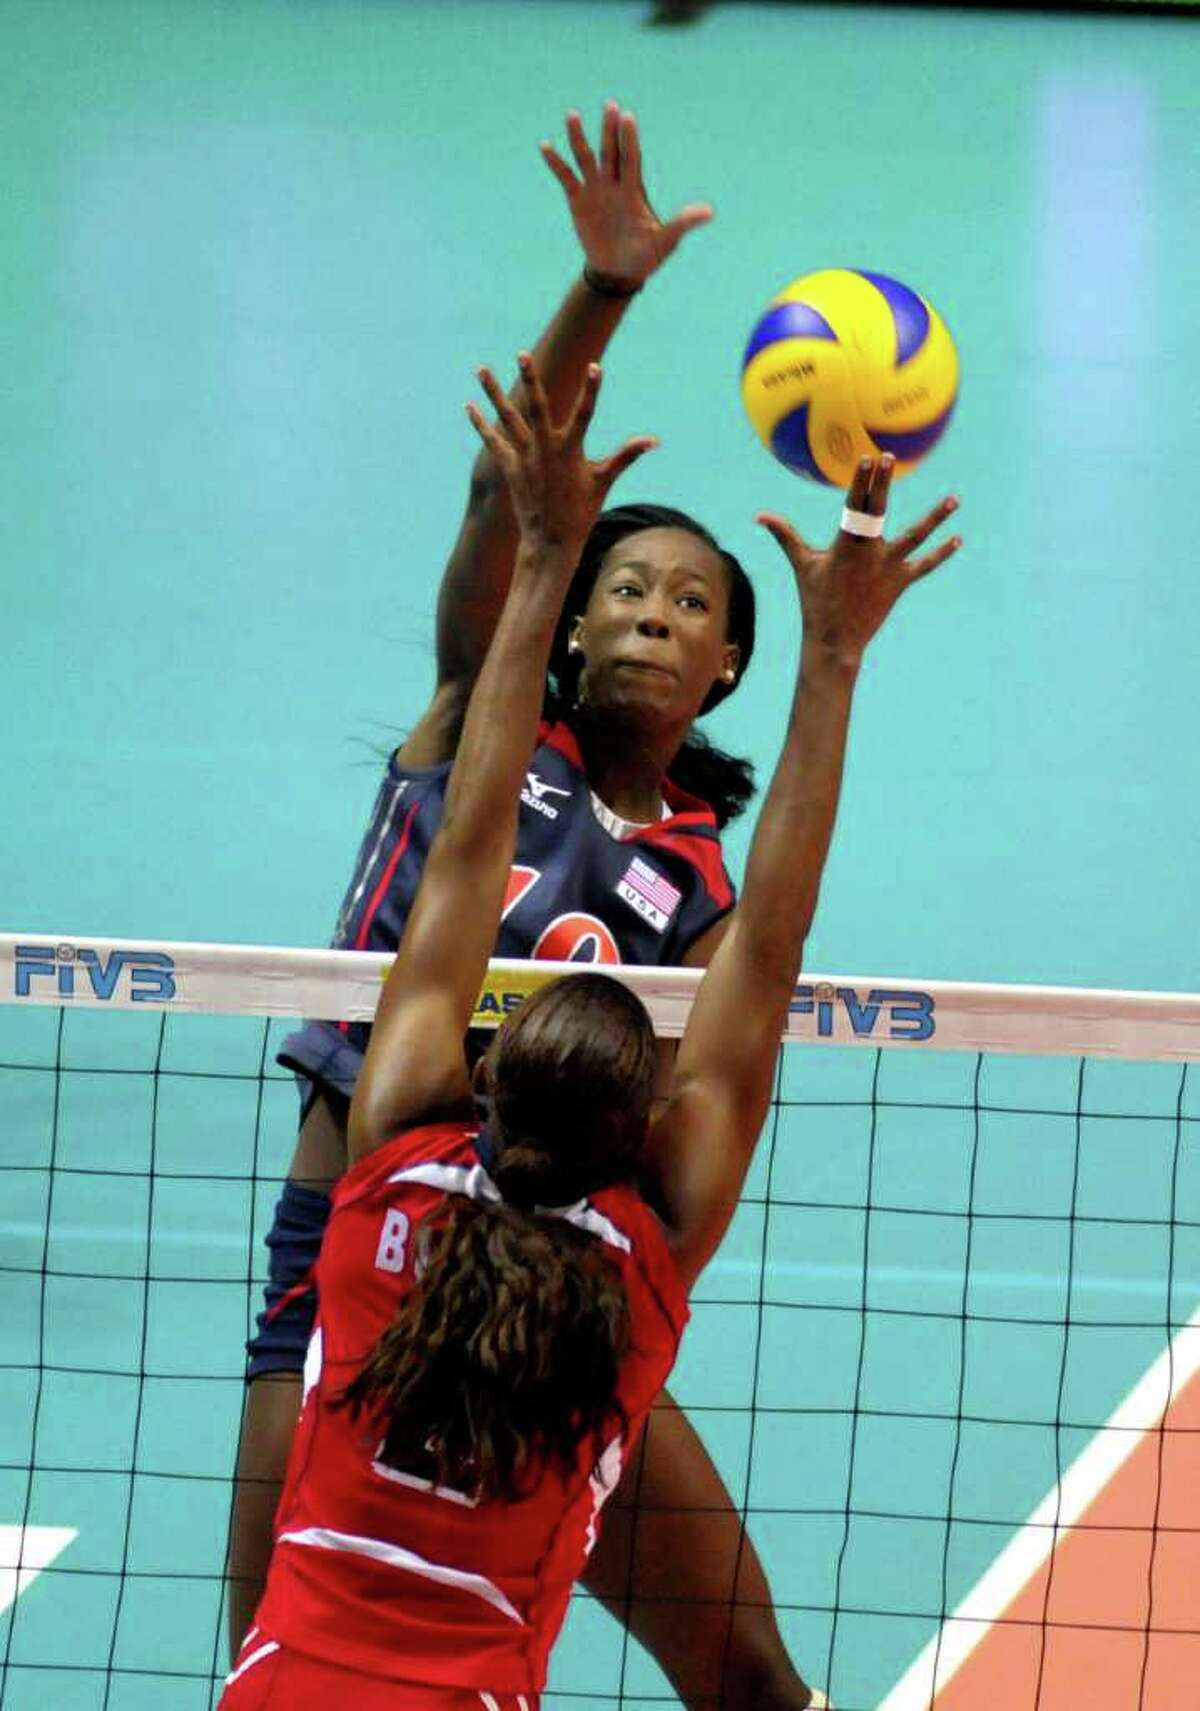 Destinee Hooker at FIVB World Grand Prix Finals Match Place 1/2 USA vs. Brazil (BRA) CONNY KURTH / WWW.KURTH-MEDIA.DE